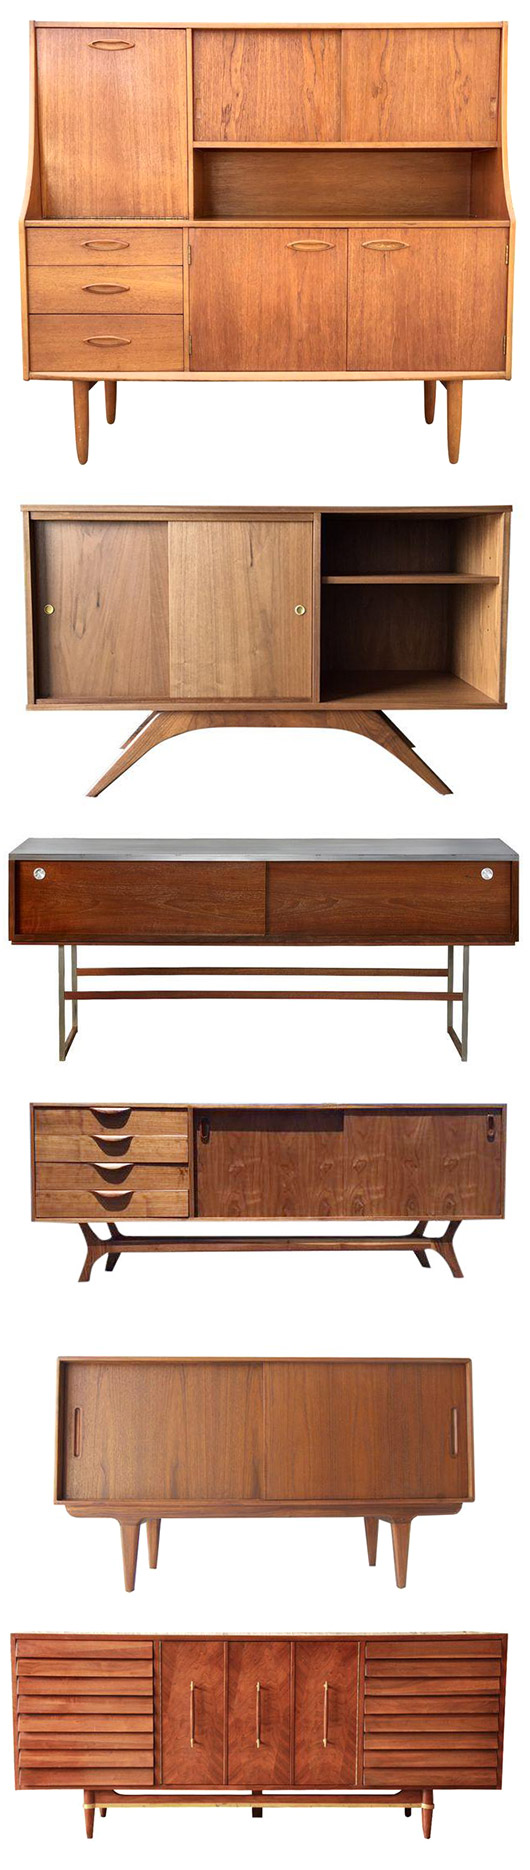 credenzas from chairish / sfgirlbybay